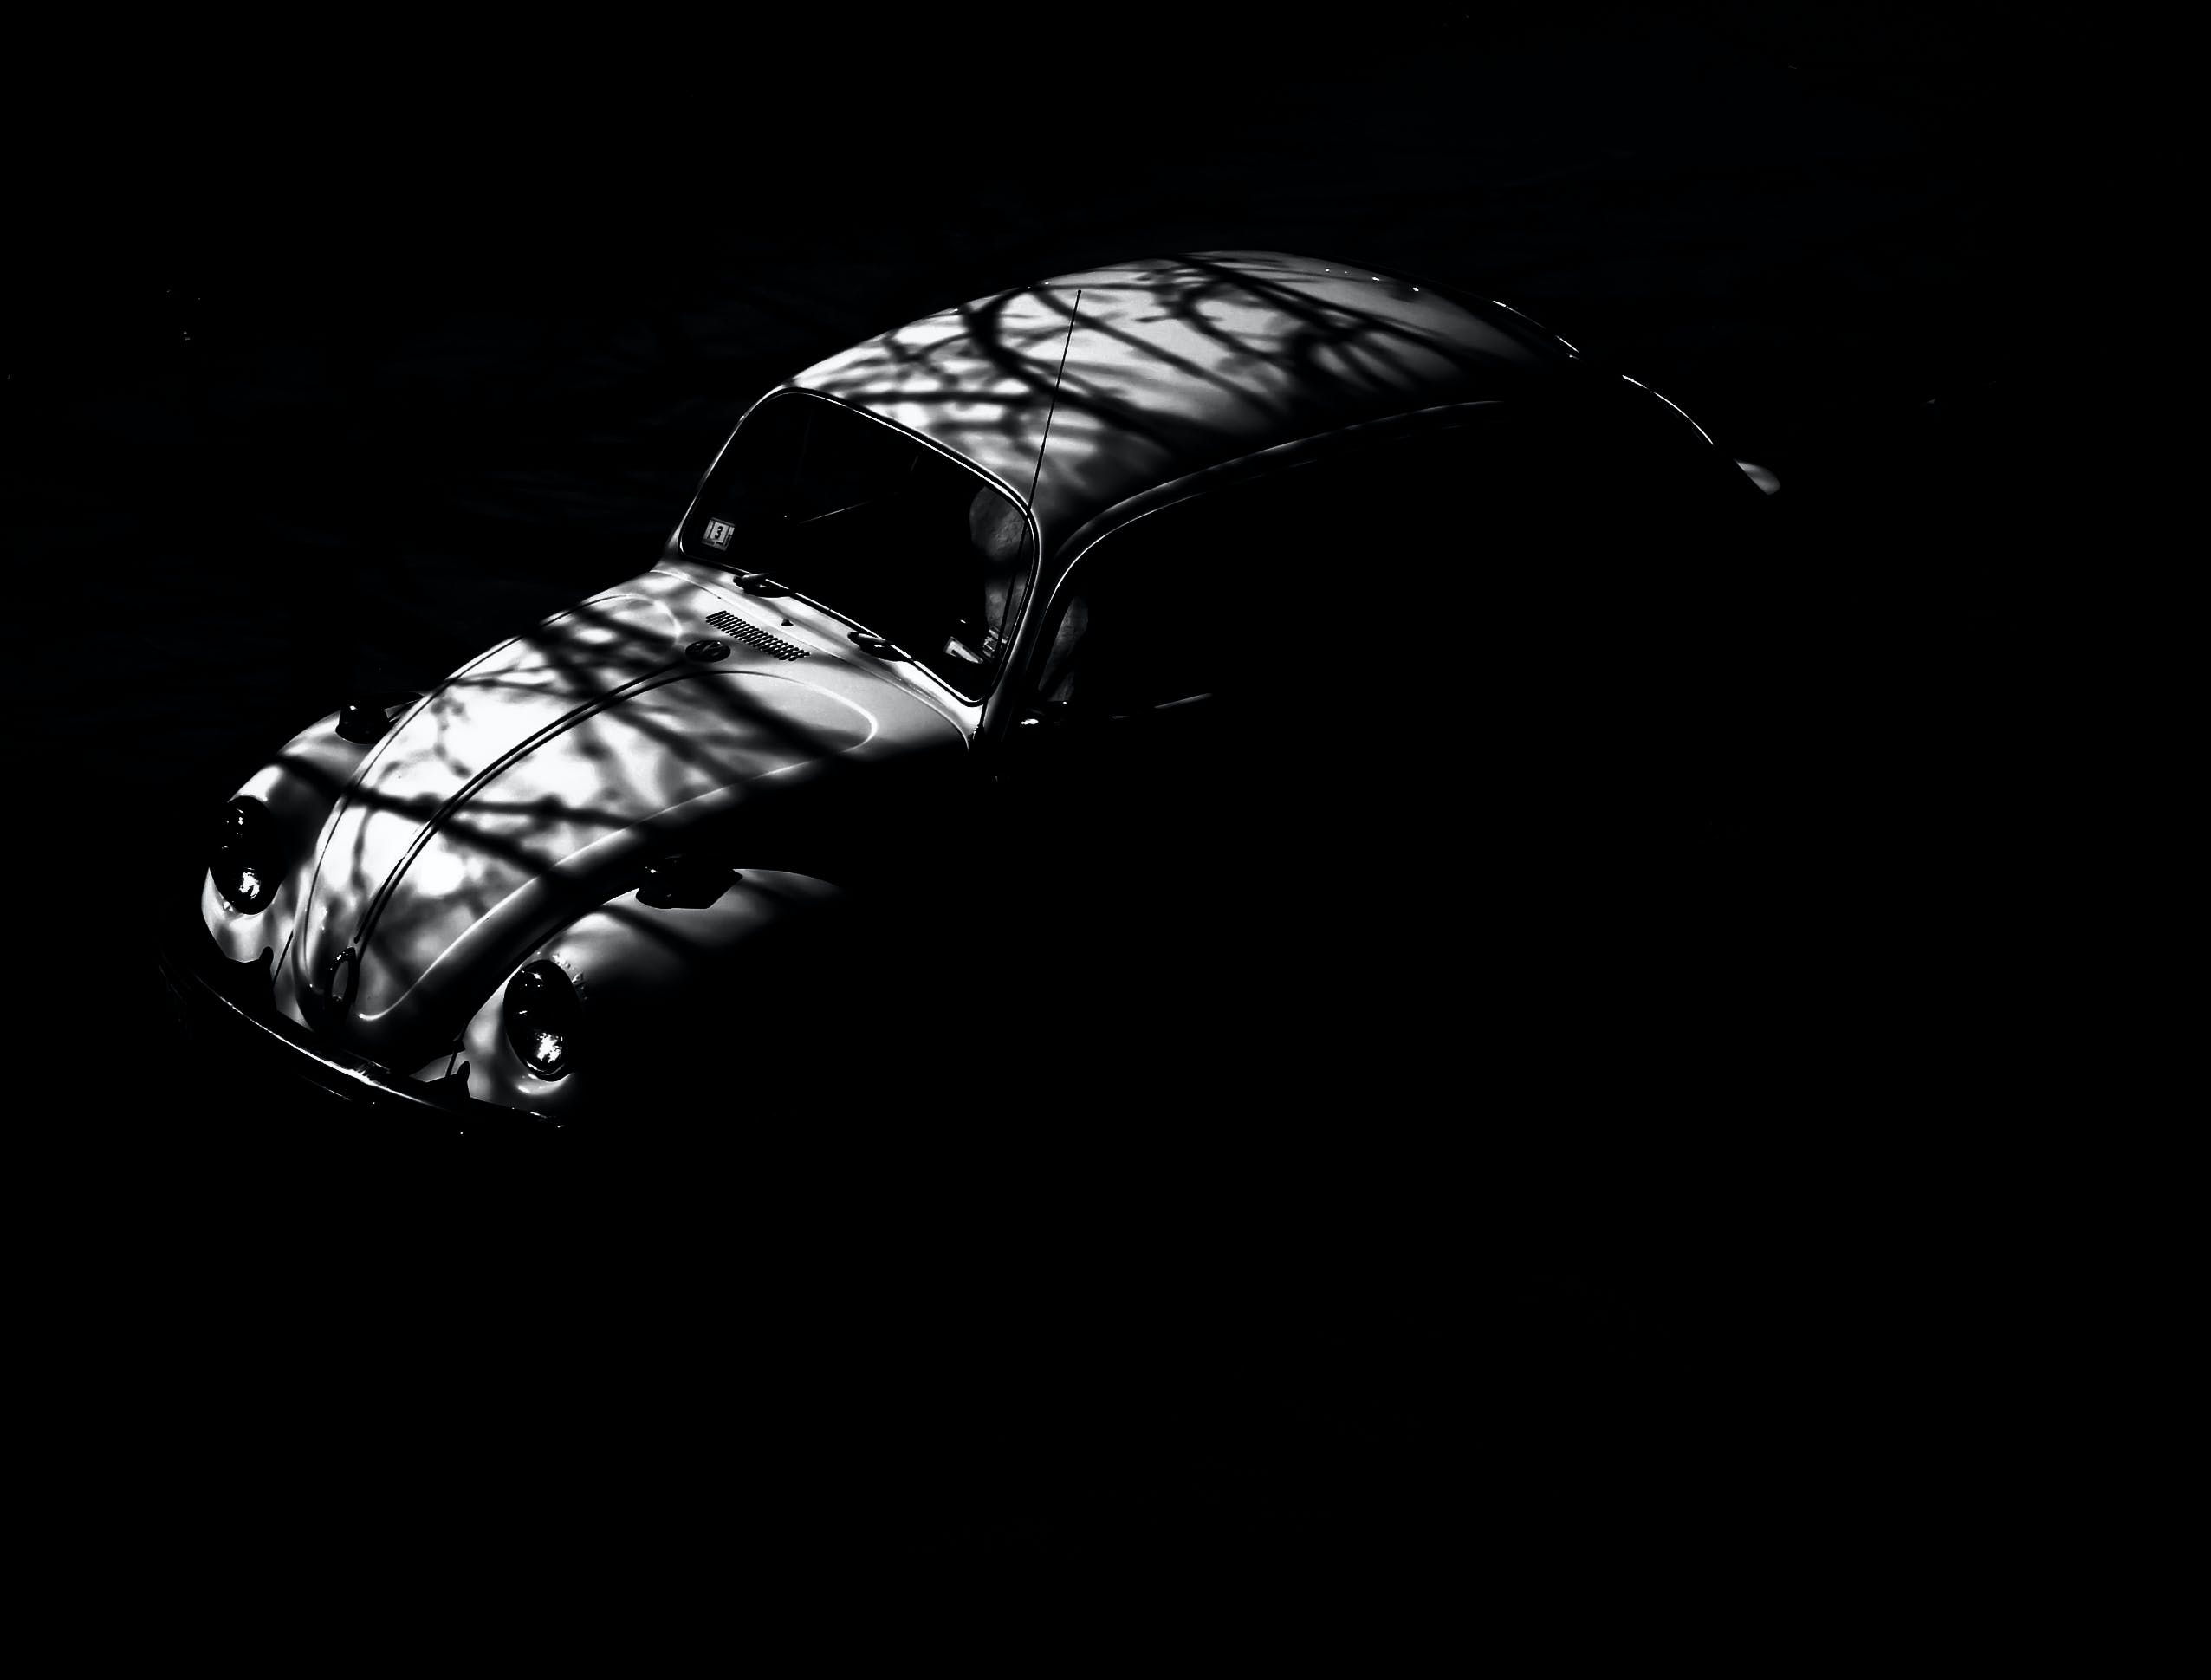 Free stock photo of black-and-white, dark, car, vehicle